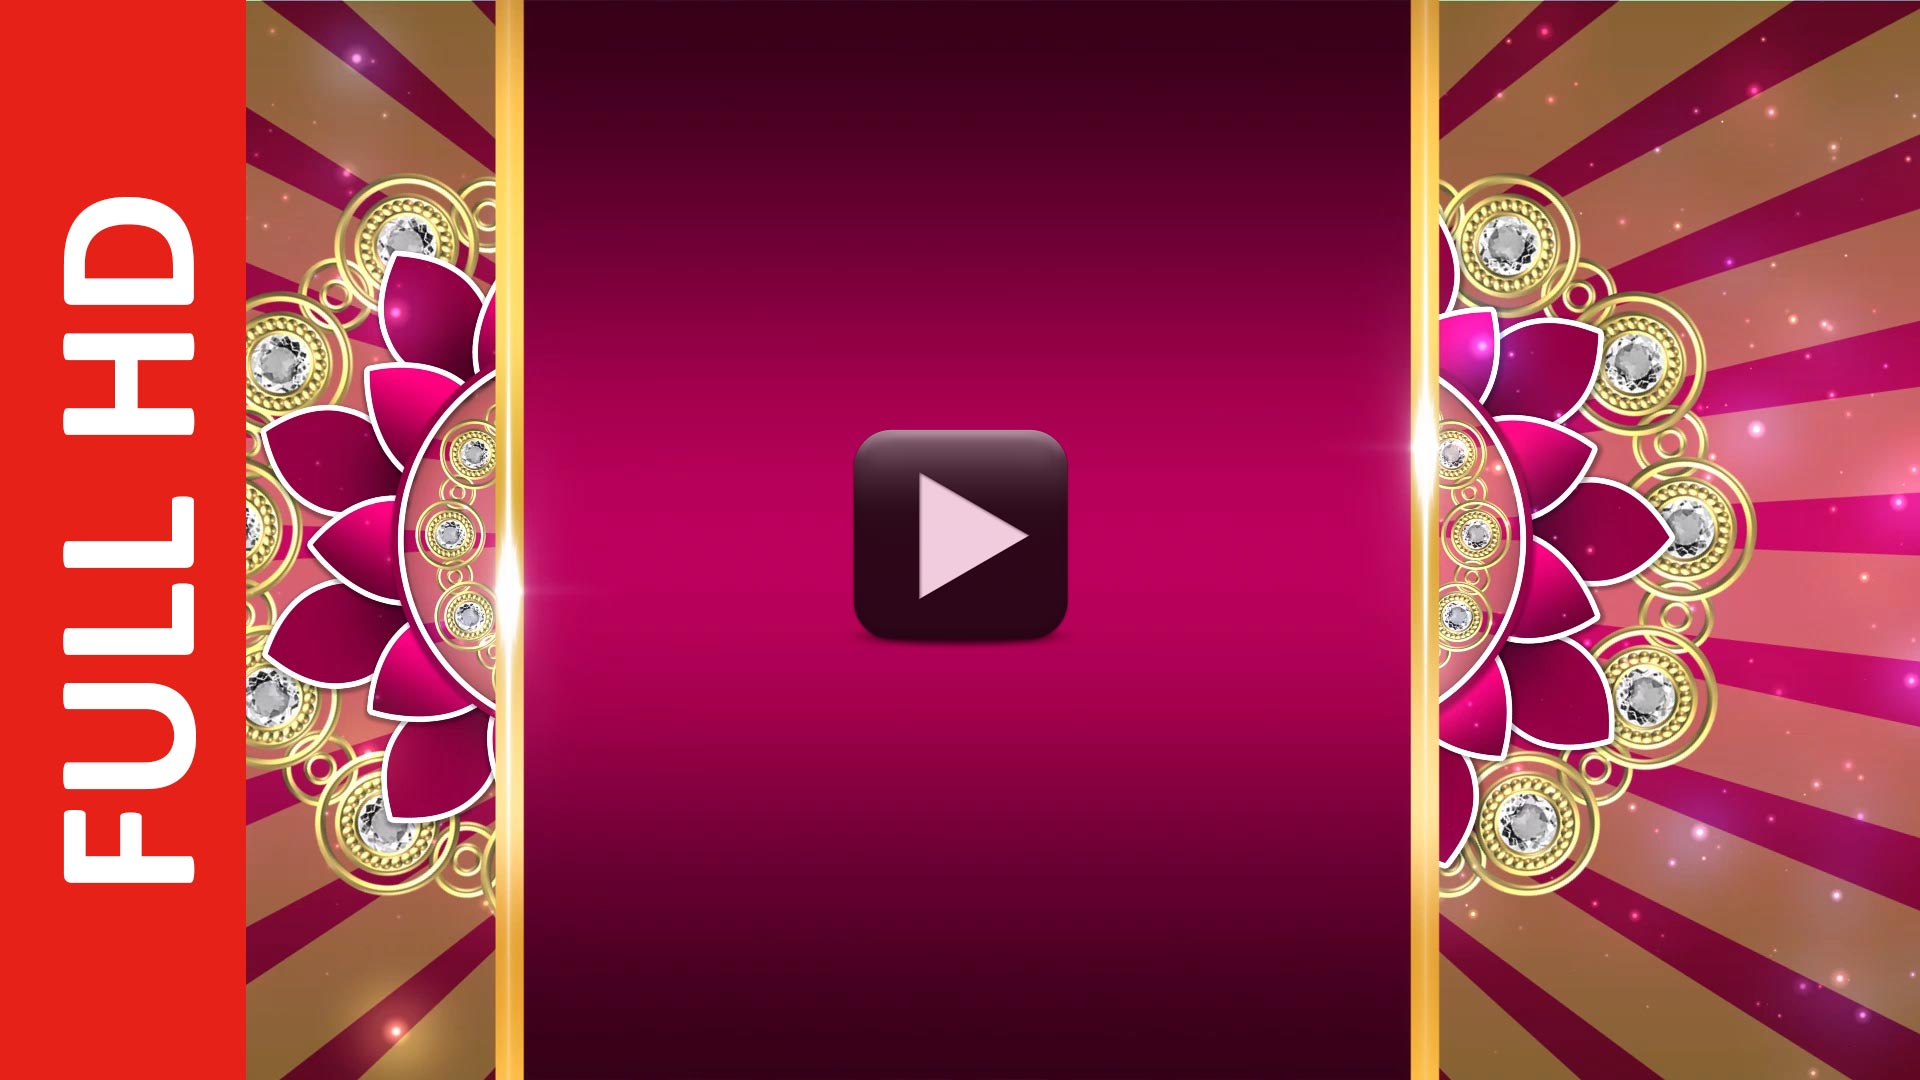 Title Background Hd Video Effects Center Title Wedding Background Frame All Design Creative